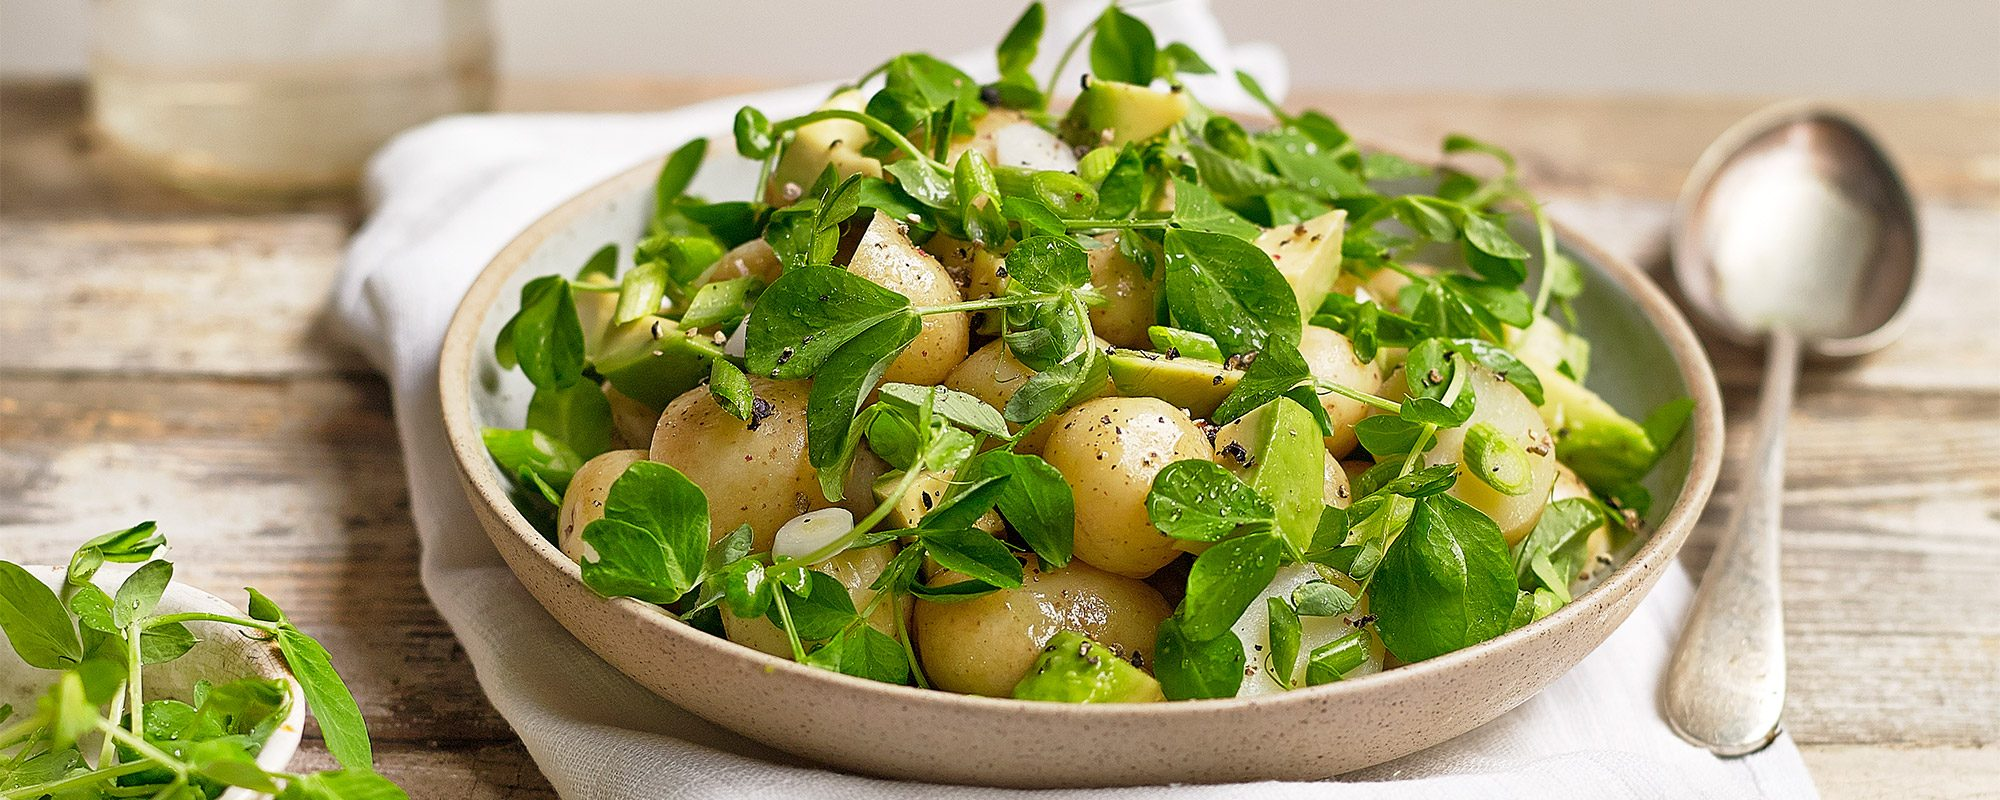 Pea Shoots Potato Salad with Avocado